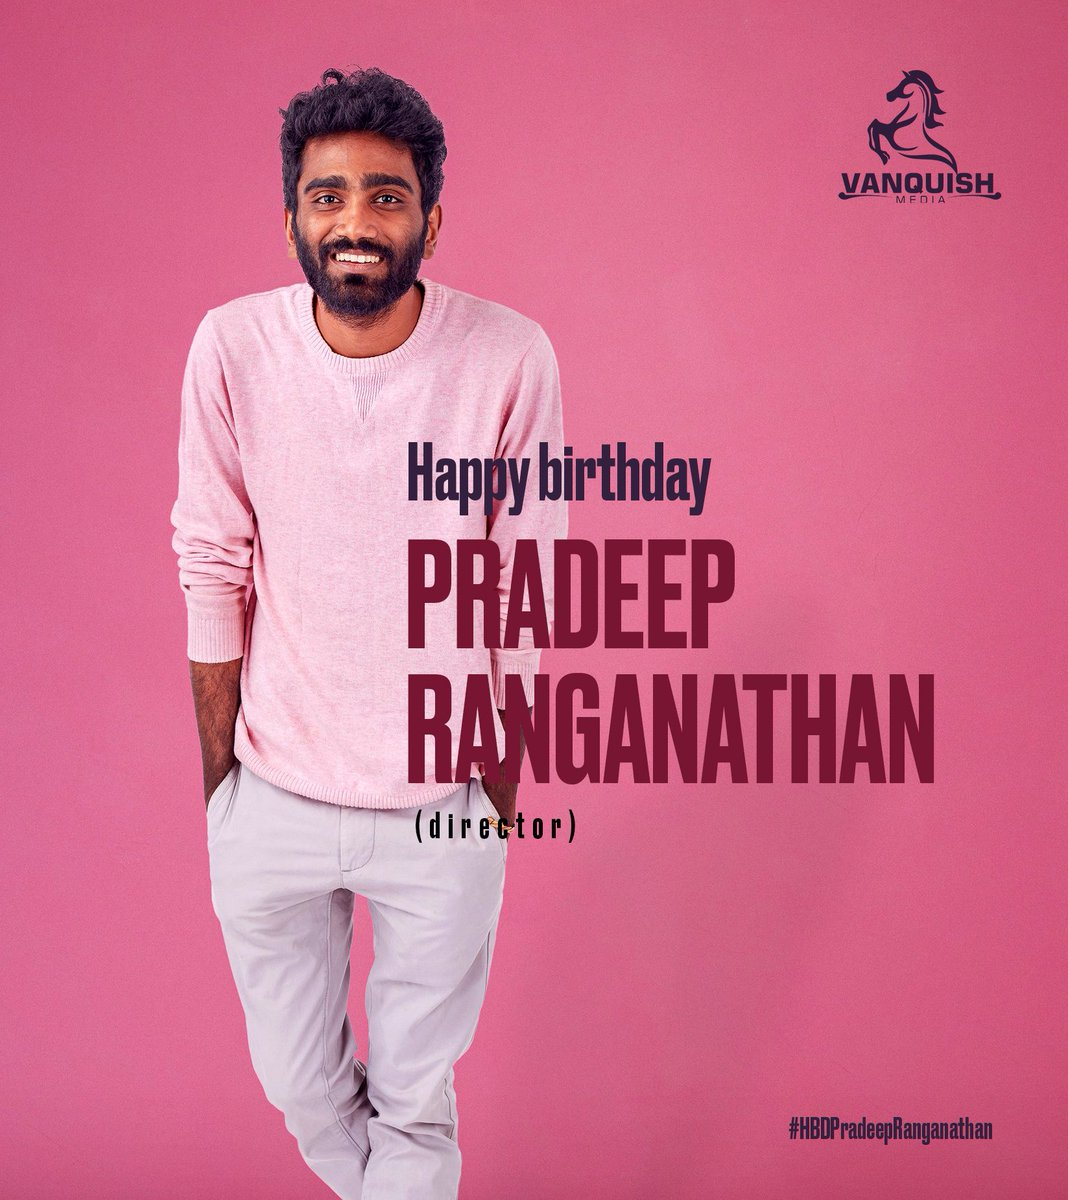 VANQUISH MEDIA Wishes the Talented & Hardworking Young Director @pradeeponelife a Blissful Birthday   #HBDPradeepRanganathan https://t.co/1hMjTs7fcg